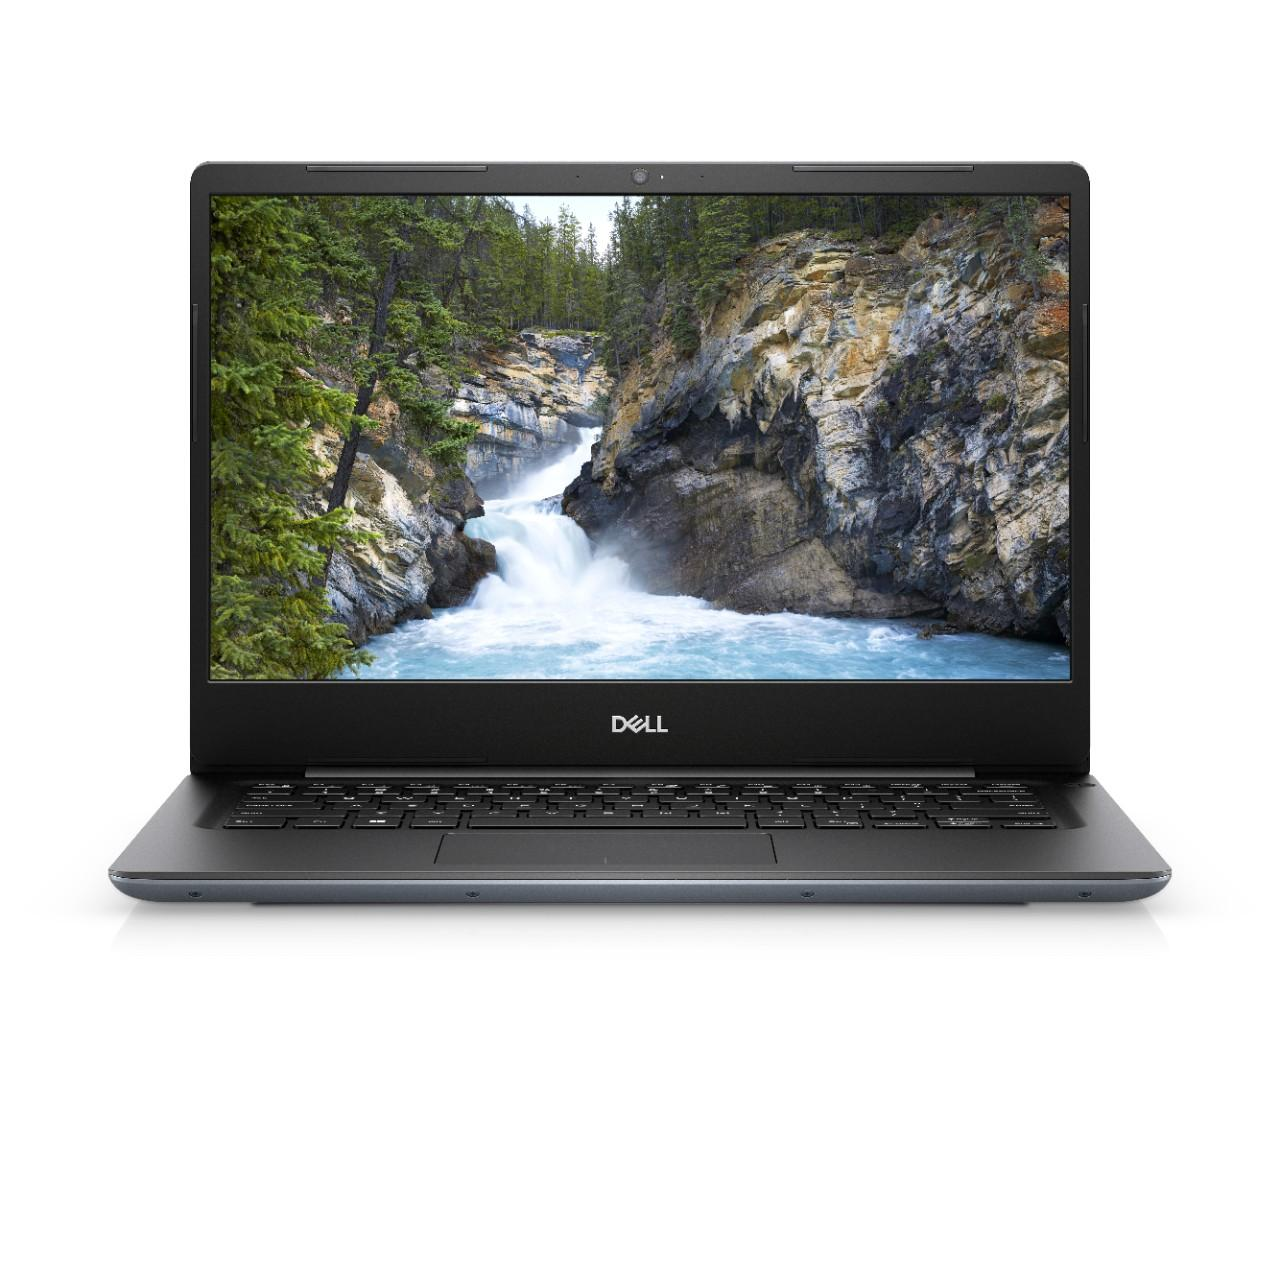 "Laptop Dell Vostro 5481 (Intel Core i7-8565U (1.80 GHz/8 MB)/8GB RAM/128GB SSD/1TB HDD/2GB NVIDIA GeForce MX130/14.0"" FHD/ Finger/WL+BT/Win 10 Home) - Hàng Chính Hãng"